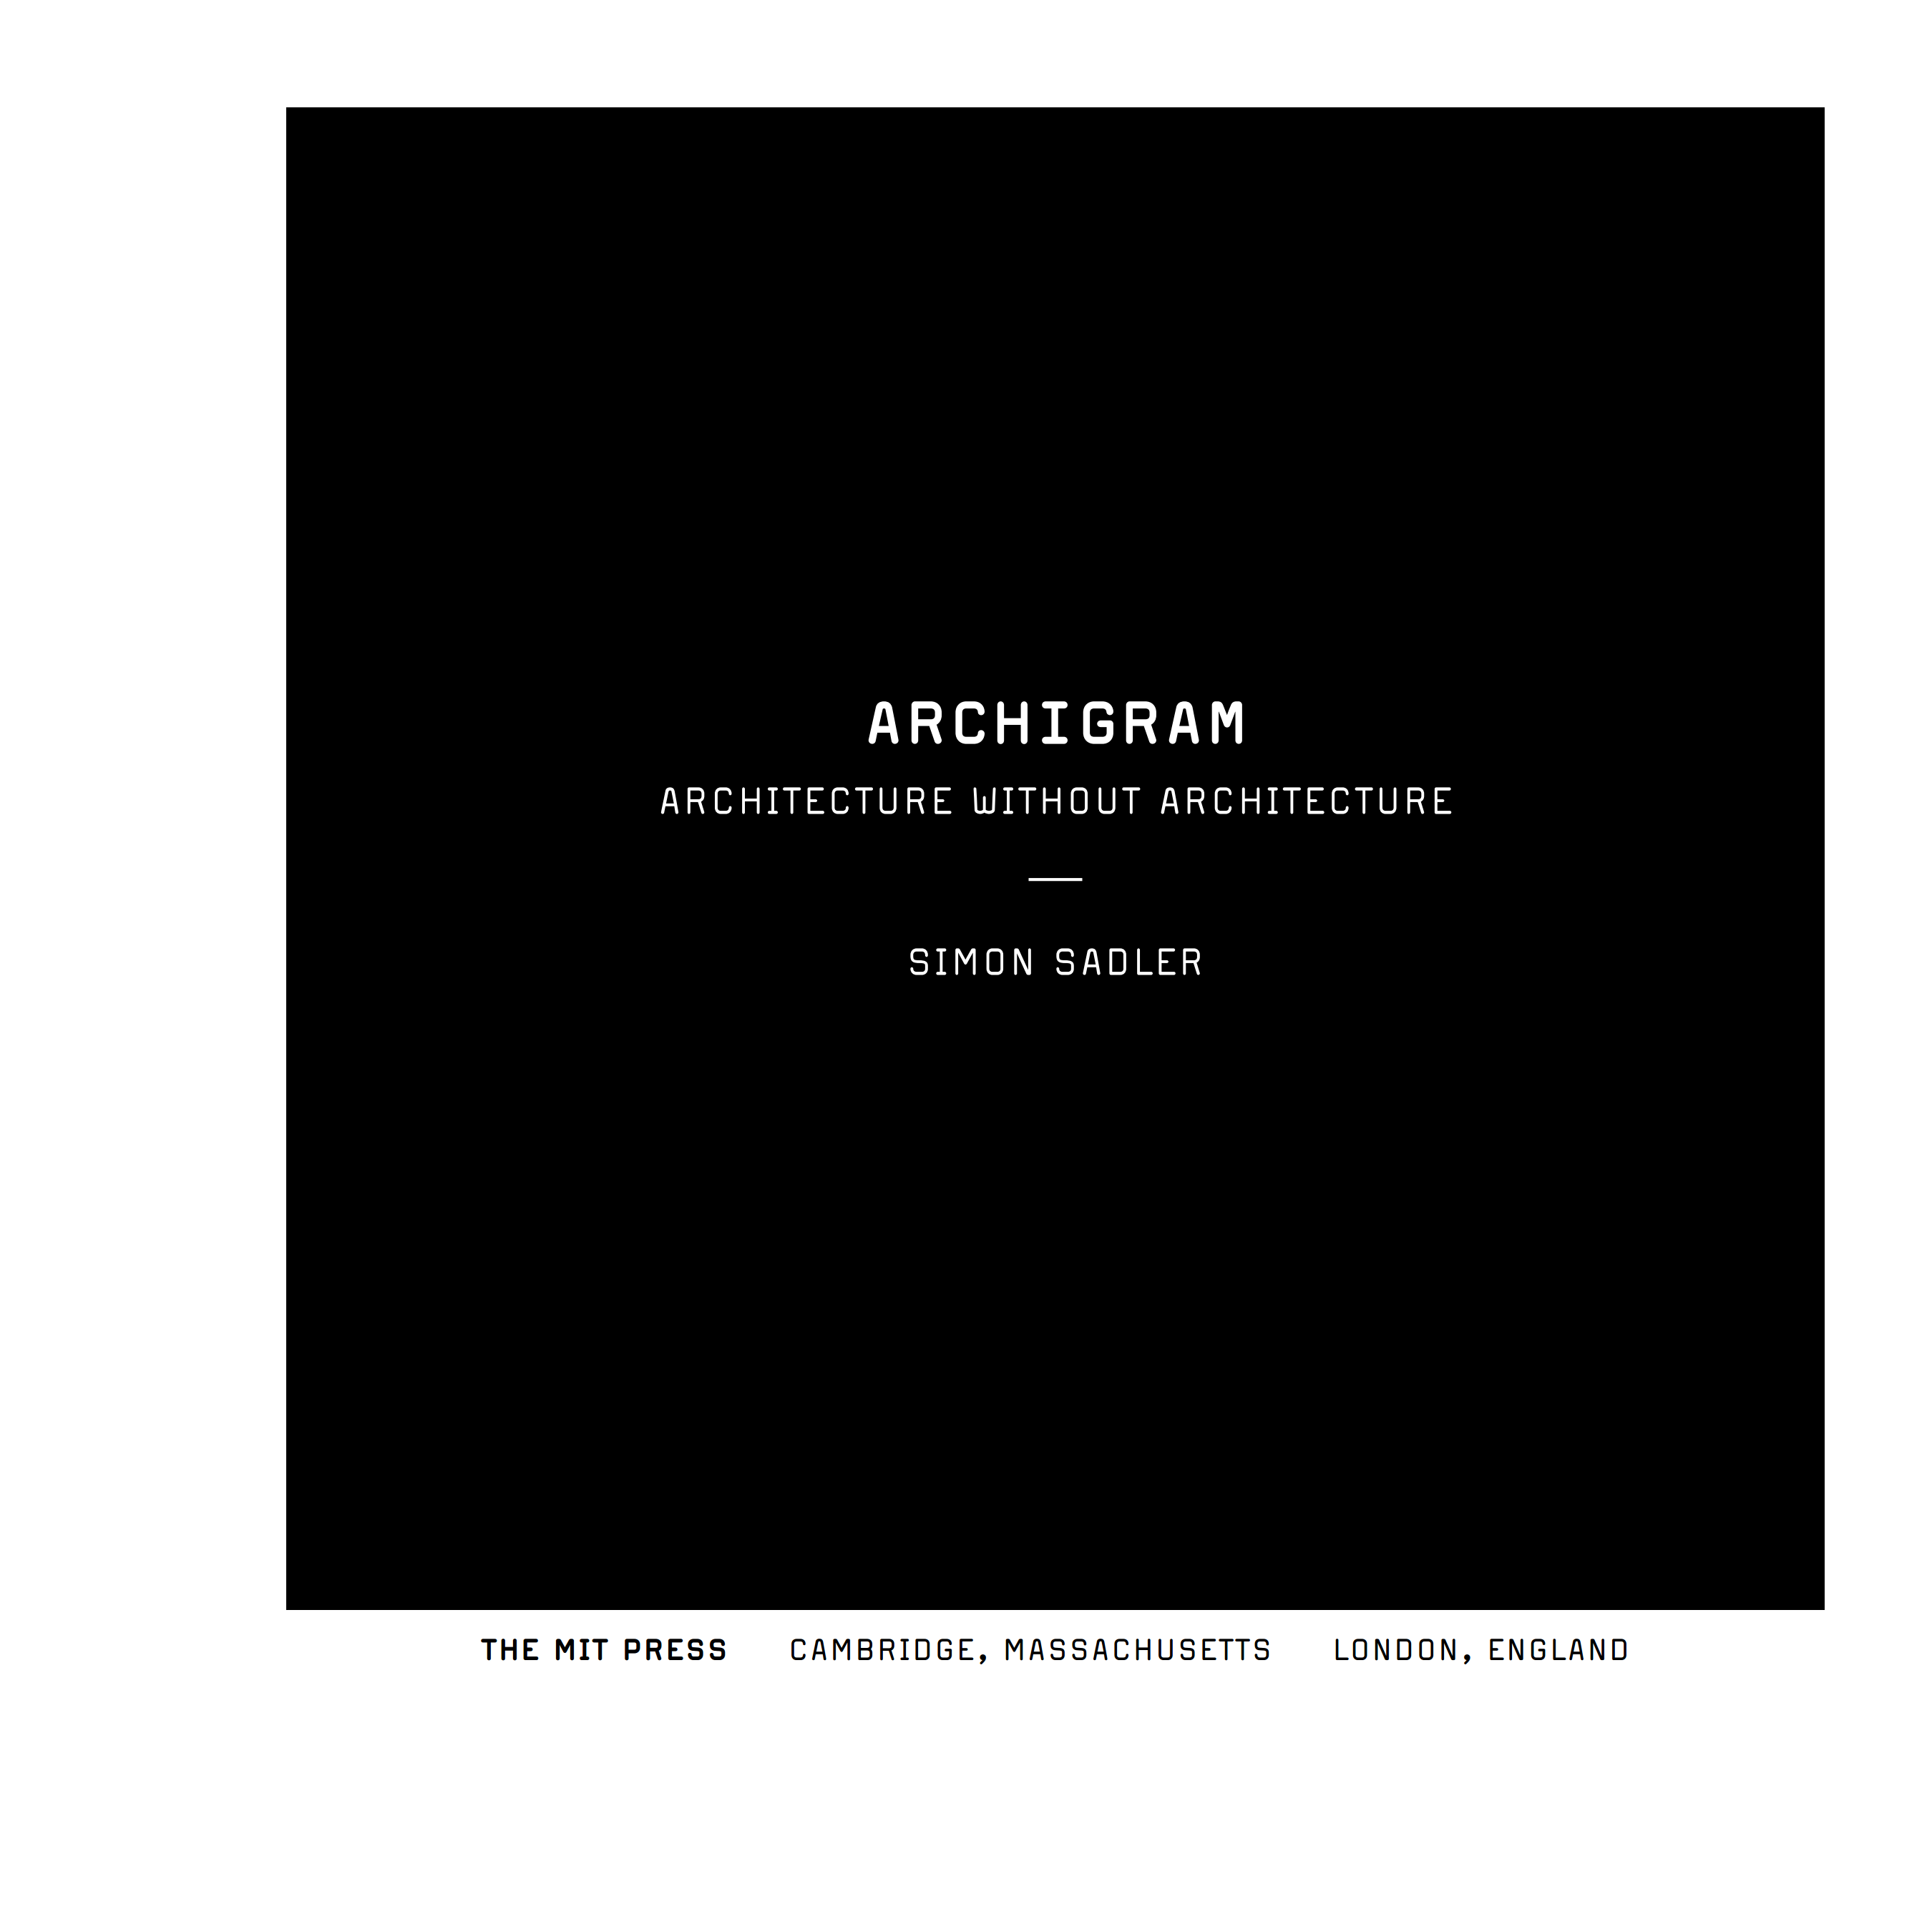 Archigram : Architecture without architecture / Simon Sadler ; Massachusetts institute of technology. — Cambridge, Massachusetts ; London, England : The MIT Press, 2005